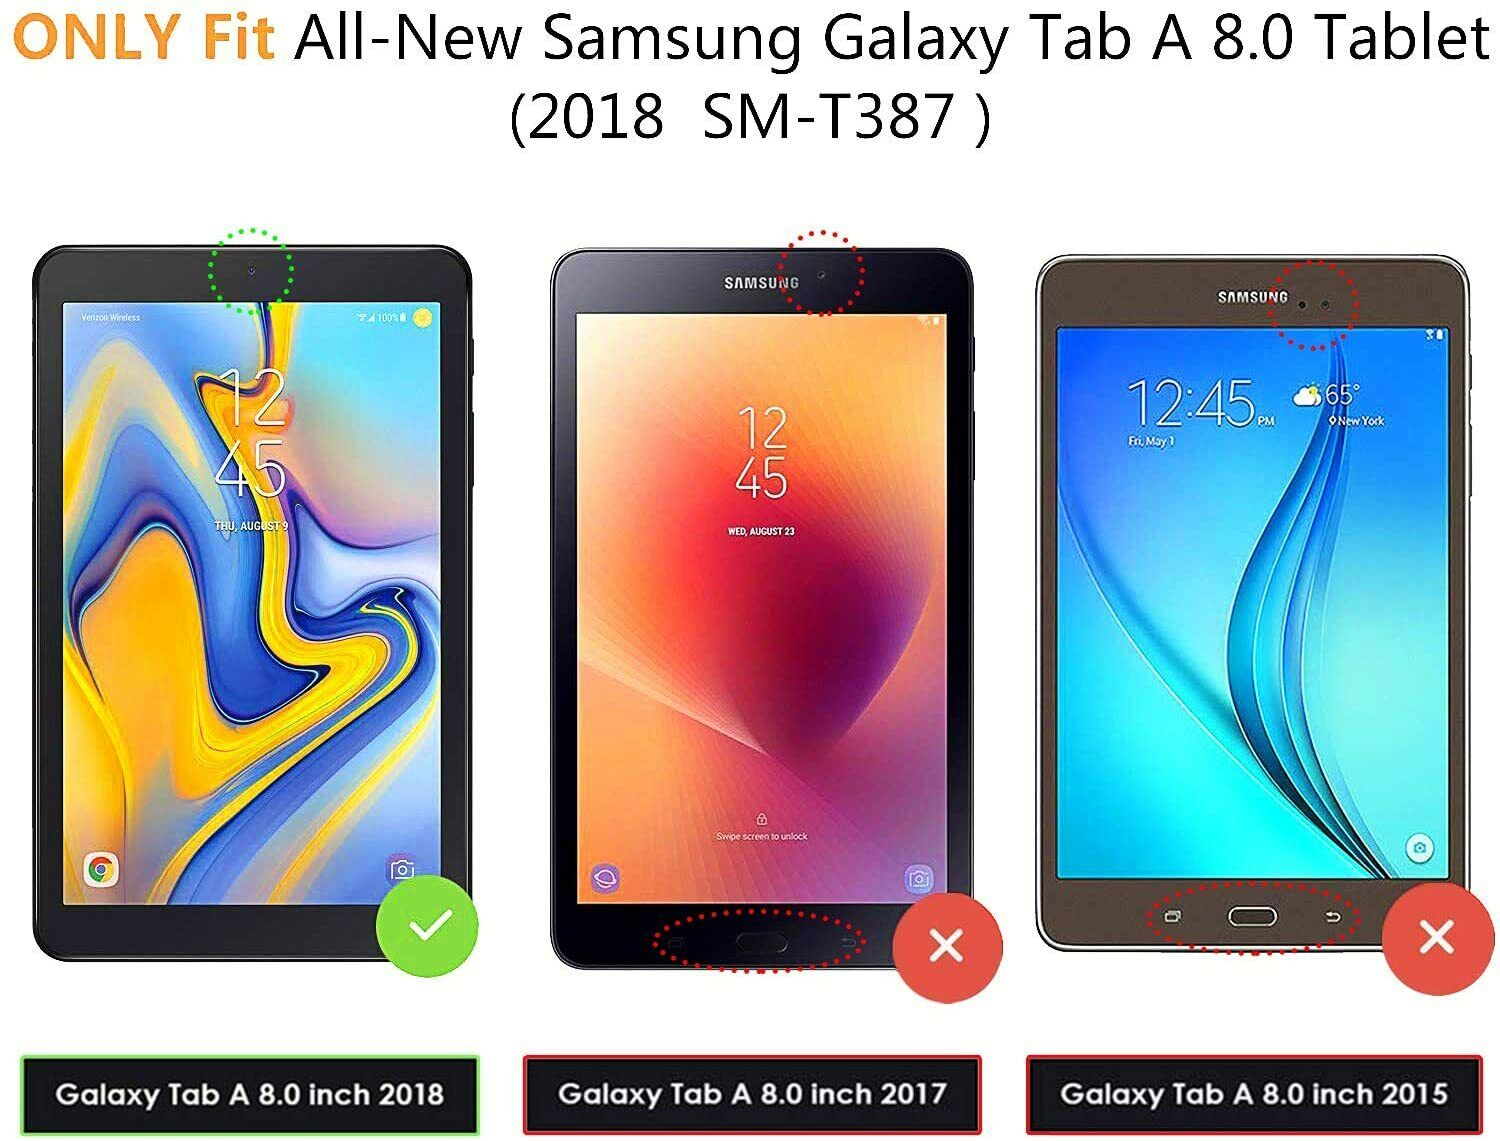 2 Pack Screen Protector Tempered Glass for Samsung Galaxy Tab A 8.0 2018 SM-T387 Cases, Covers, Keyboard Folios